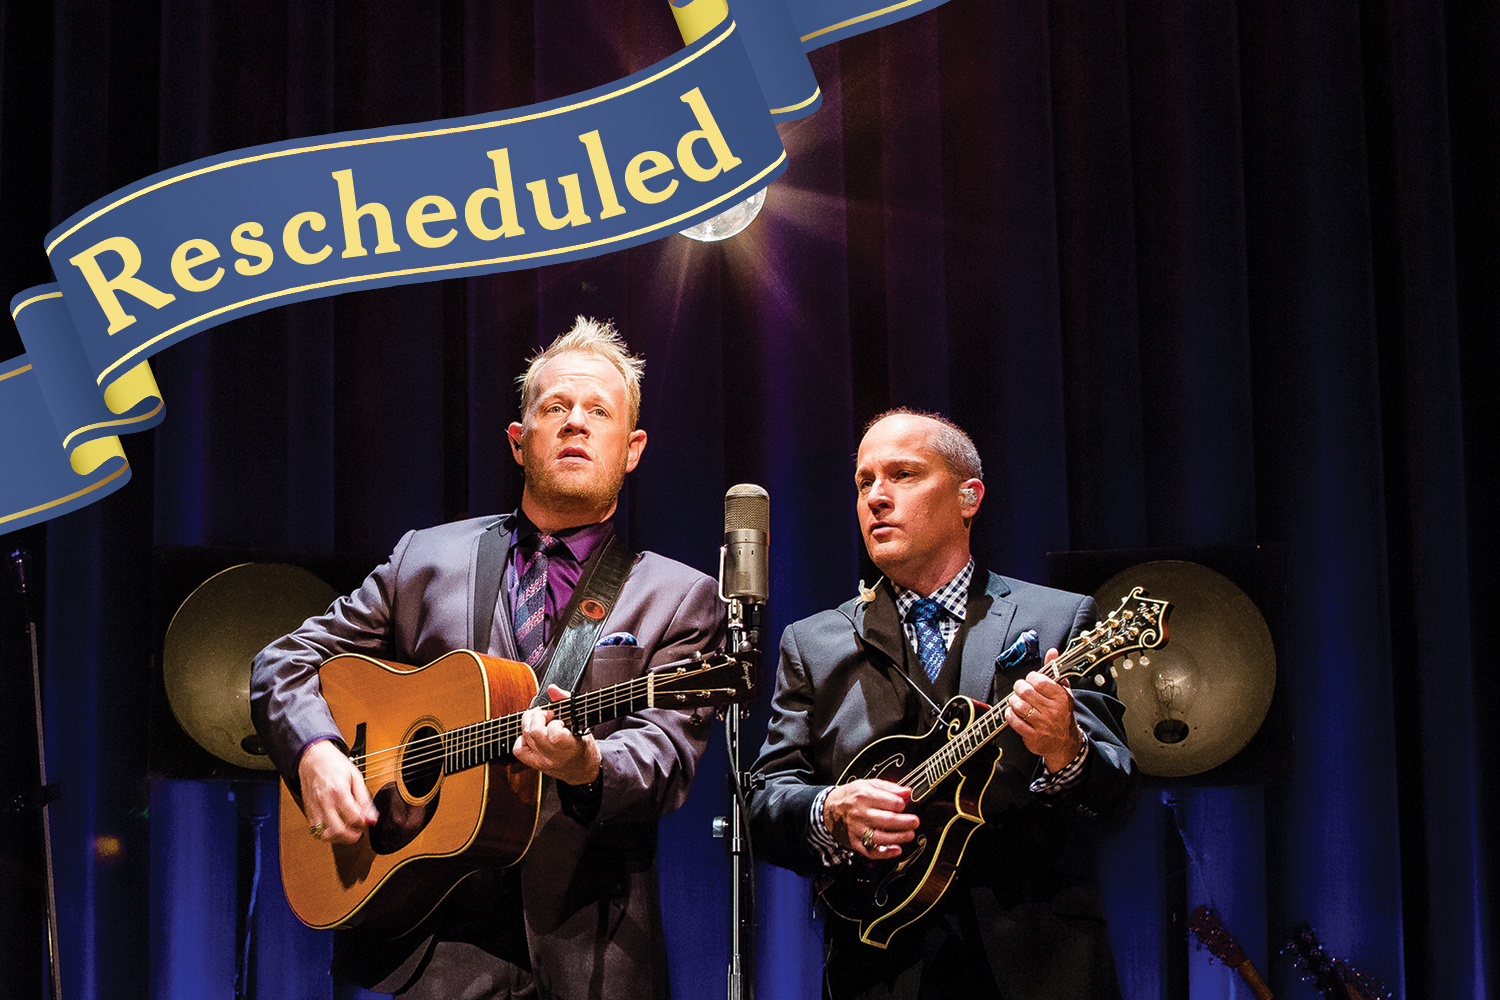 DaileyVincent_Rescheduled.jpg